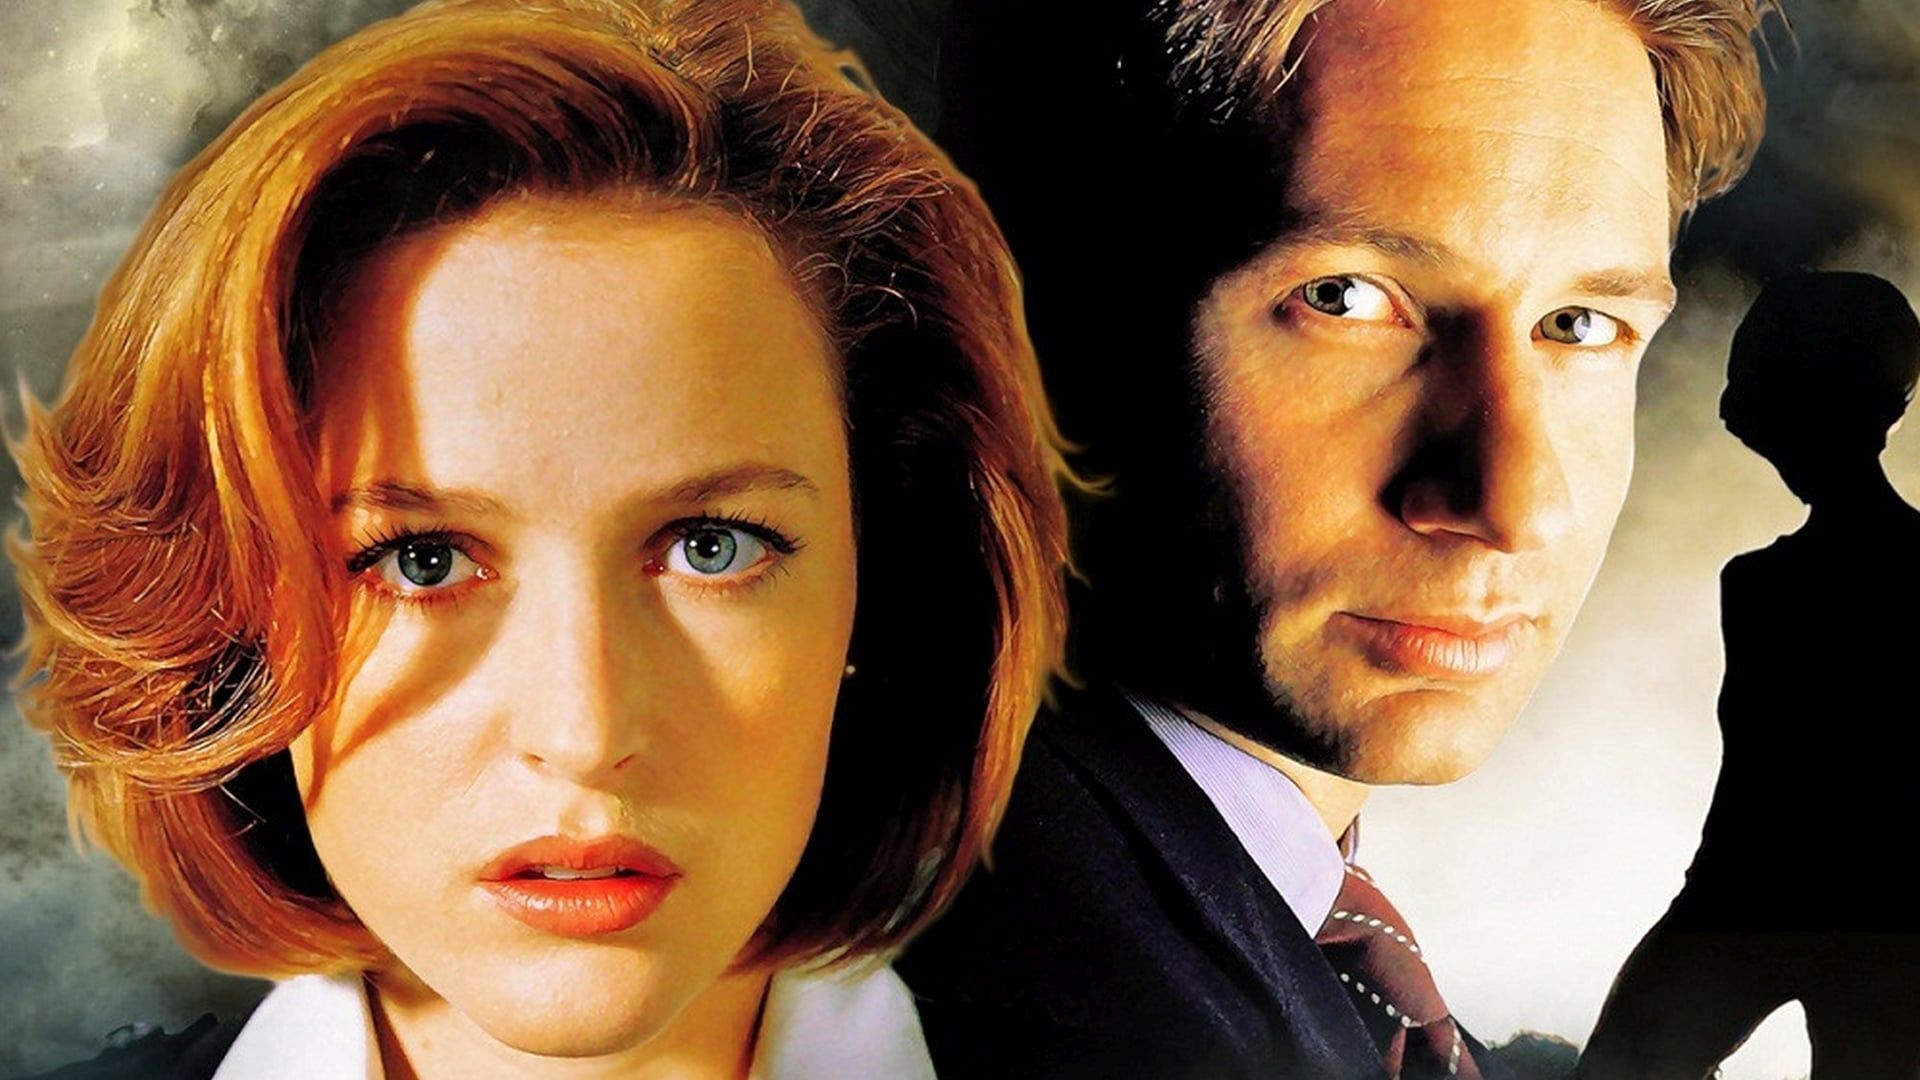 The X Files 1998 Backdrops The Movie Database Tmdb